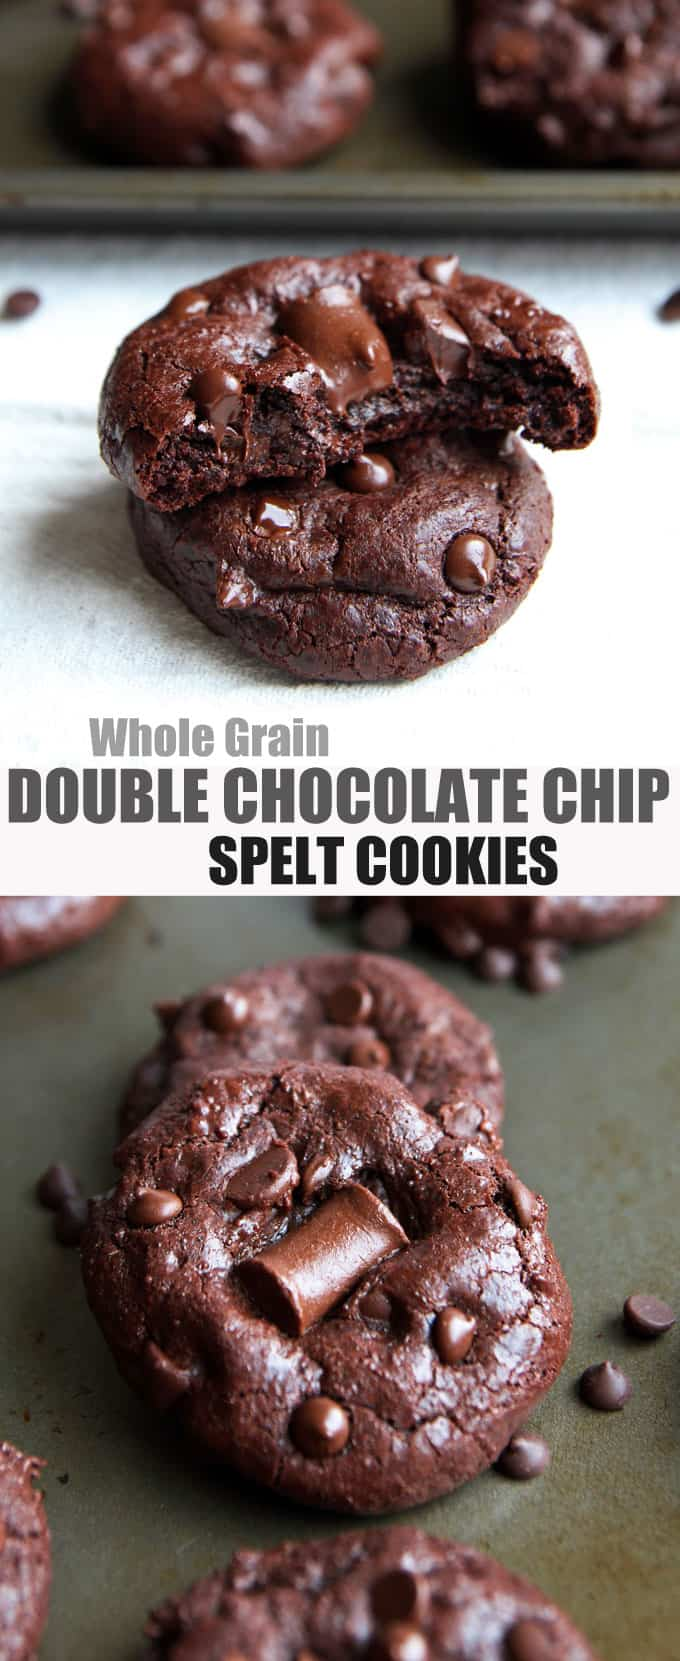 Double Chocolate Chip Cookies with Spelt Flour - no refined sugar